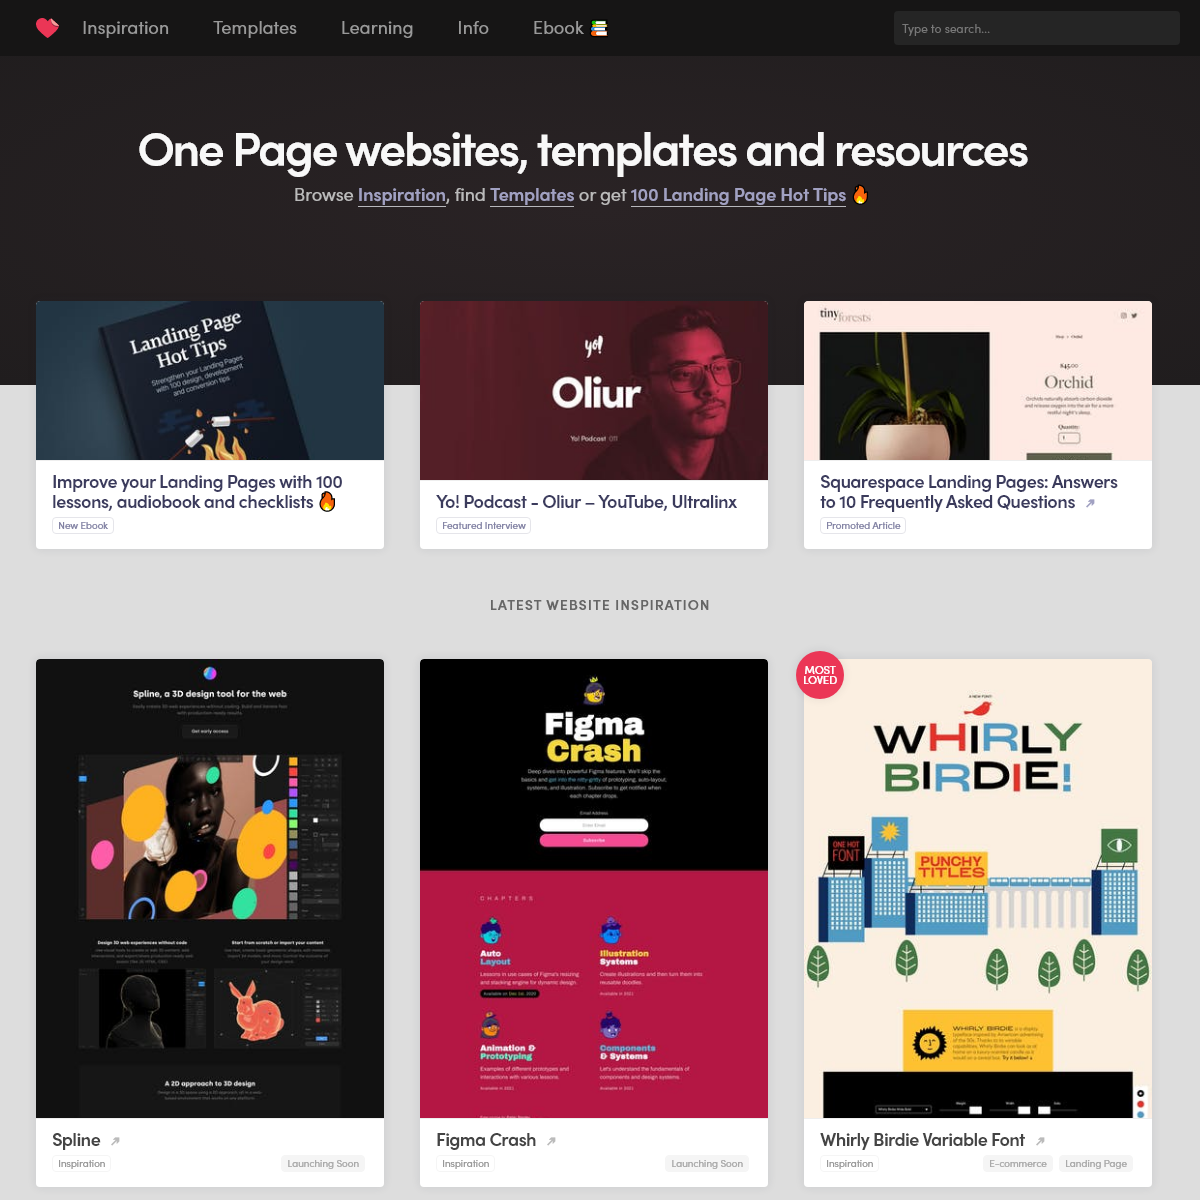 One Page Love - One Page Website Inspiration and Templates